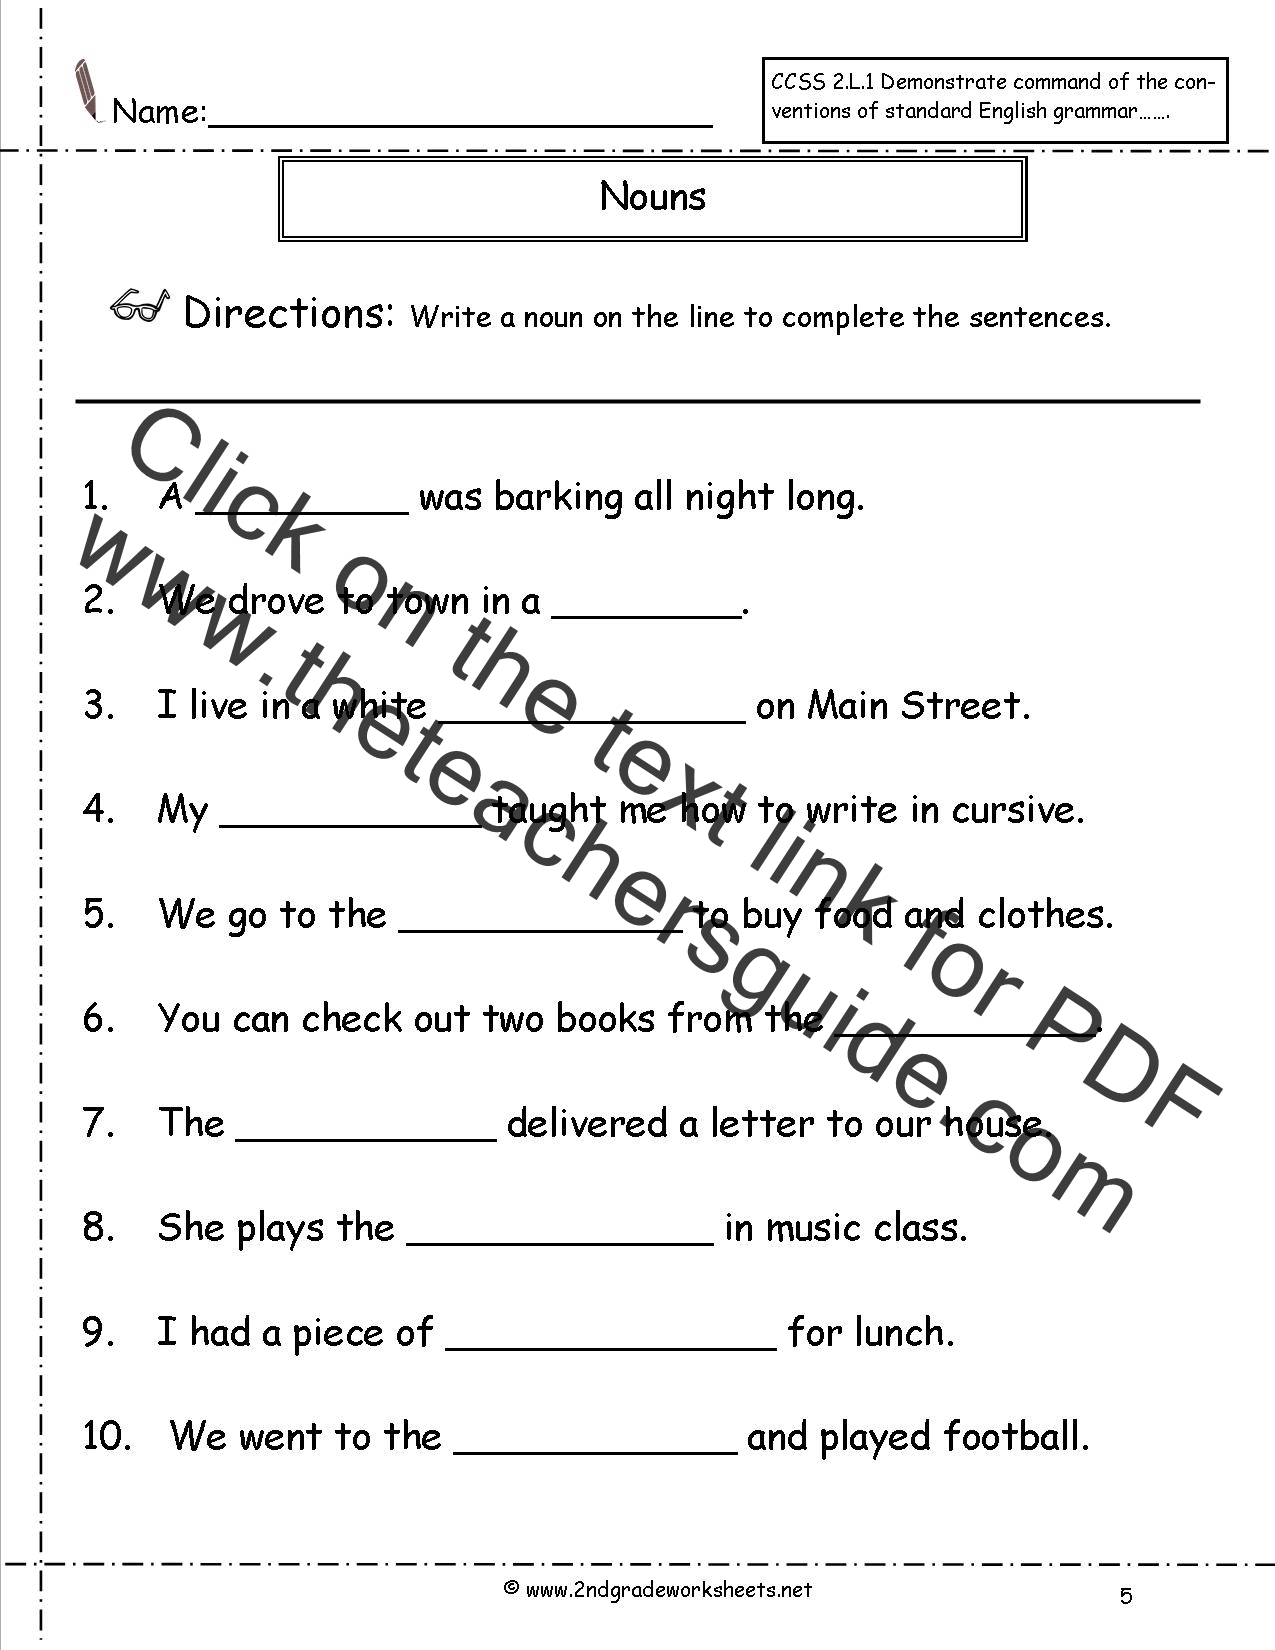 Nouns Worksheets and Printouts – Proper Nouns Worksheet